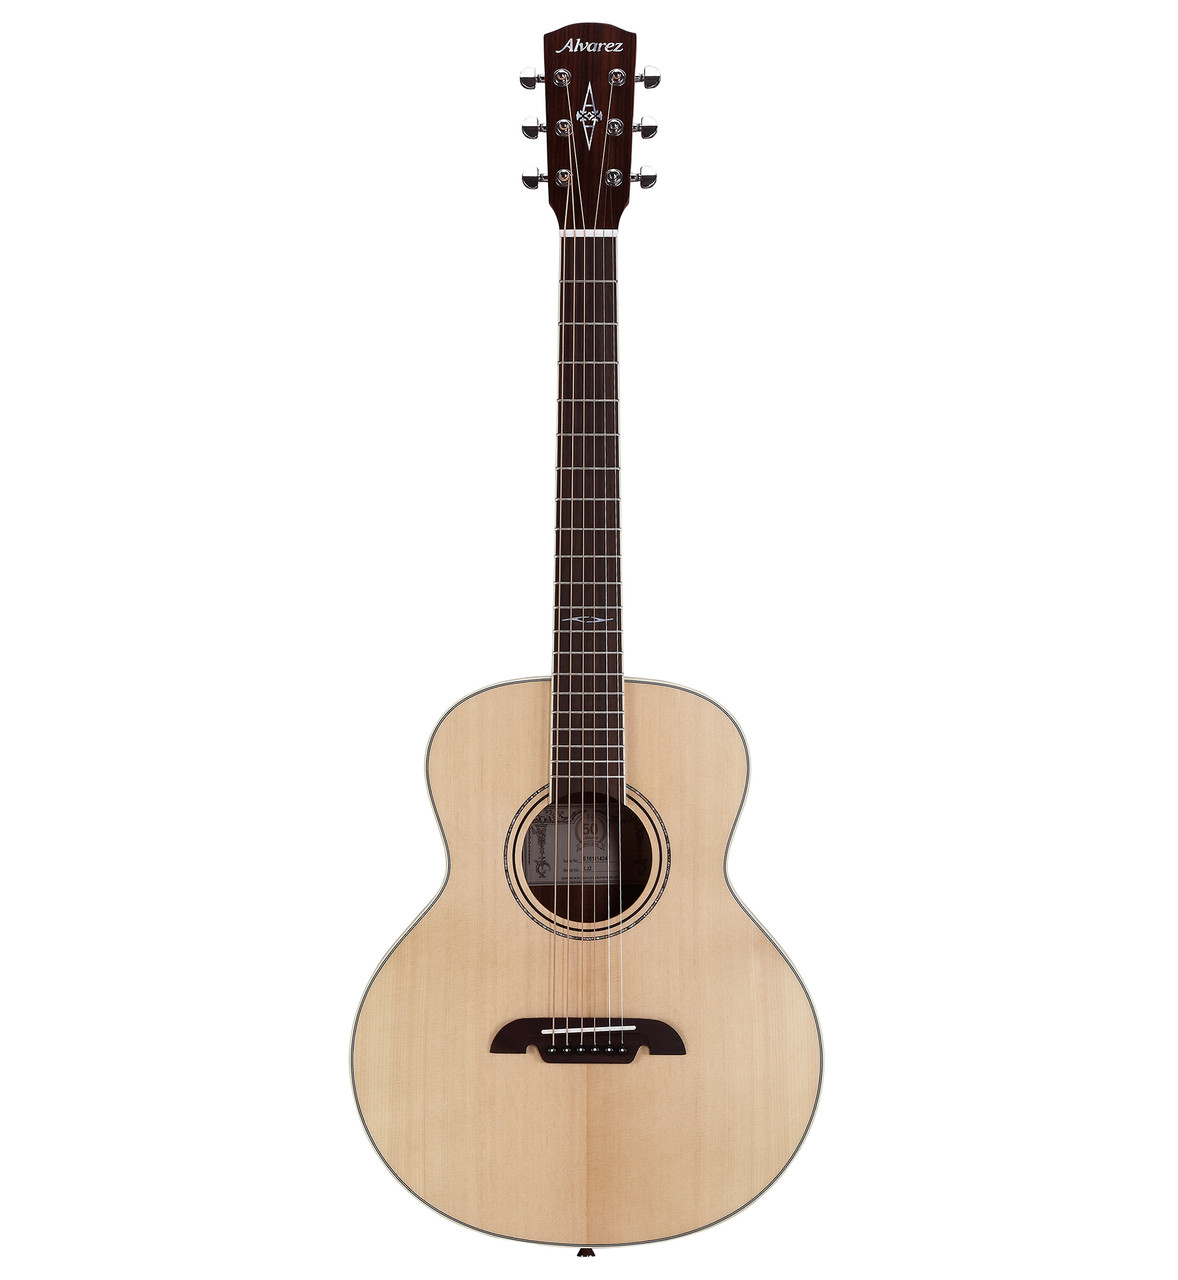 Alvarez Artist LJ2E Little Jumbo Travel Guitar